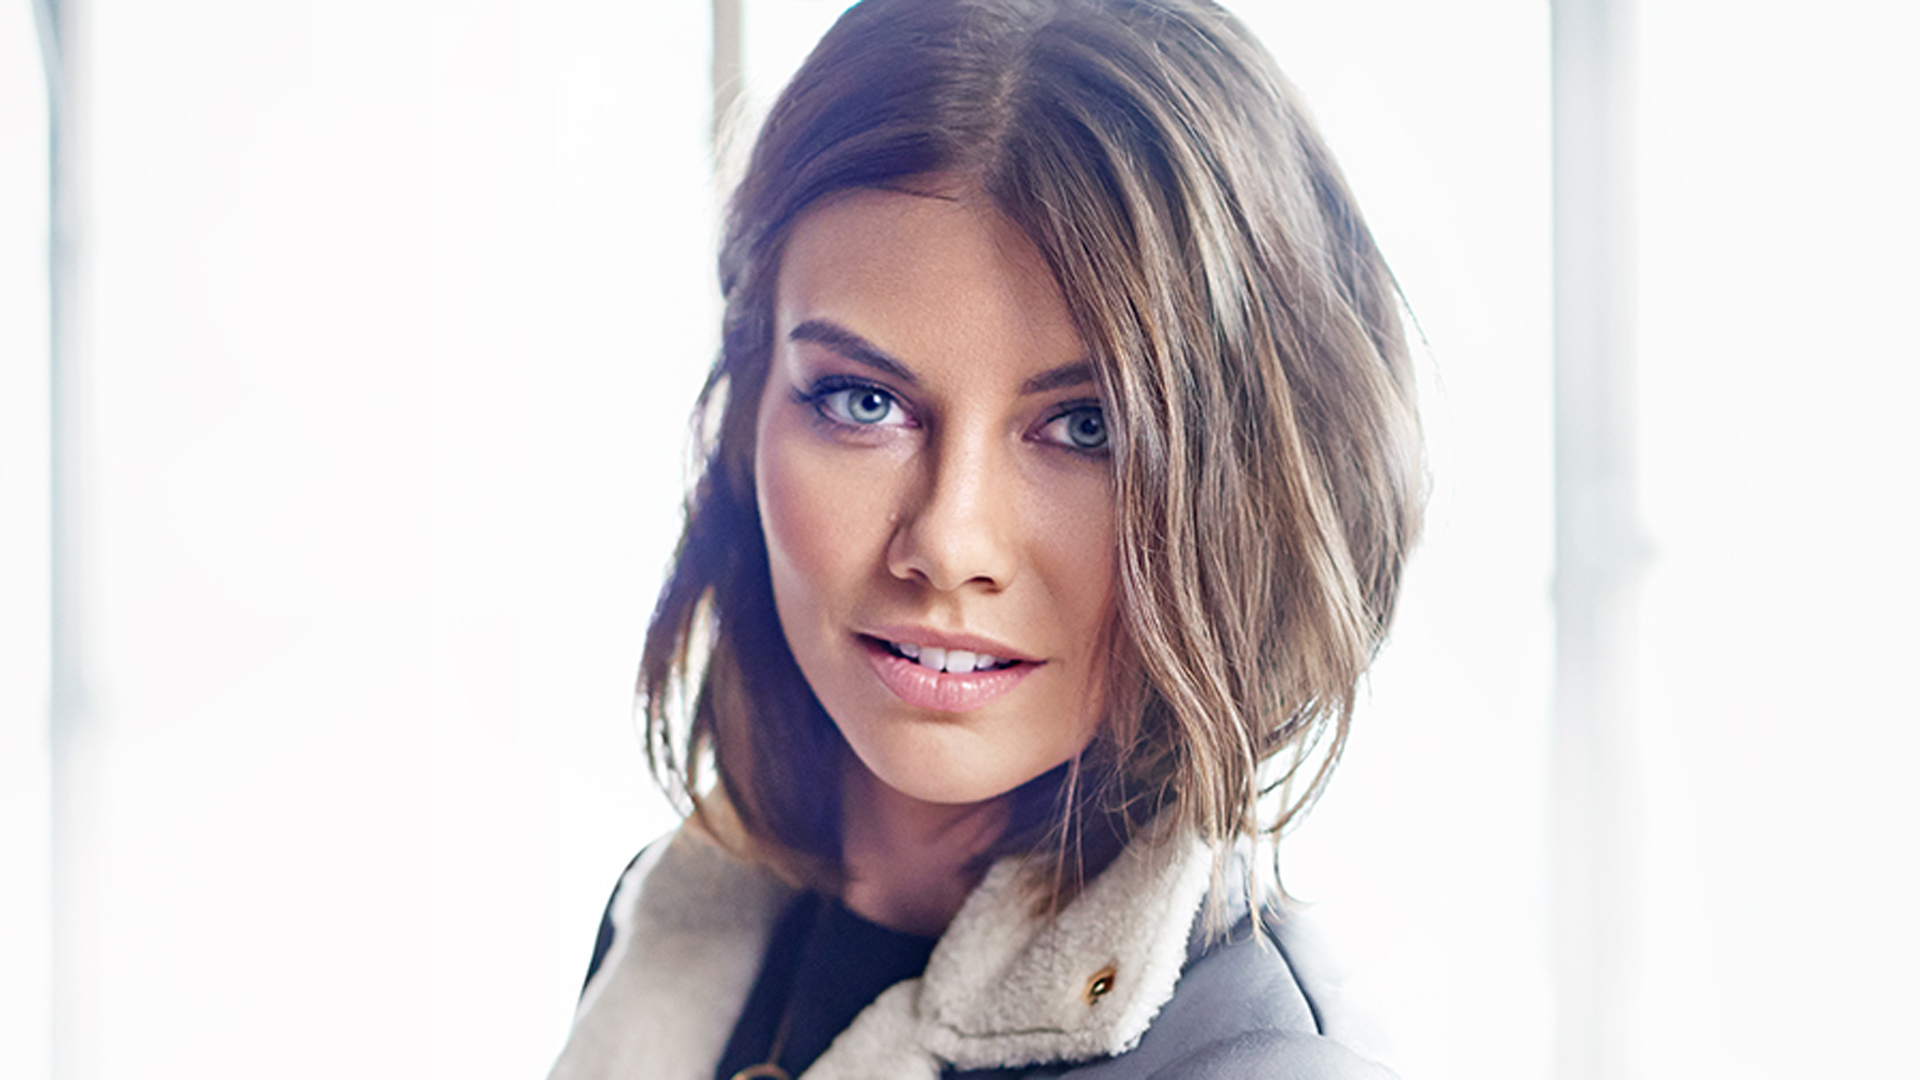 4k Hd Wallpapers For Iphone Lauren Cohan Wallpapers Pictures Images